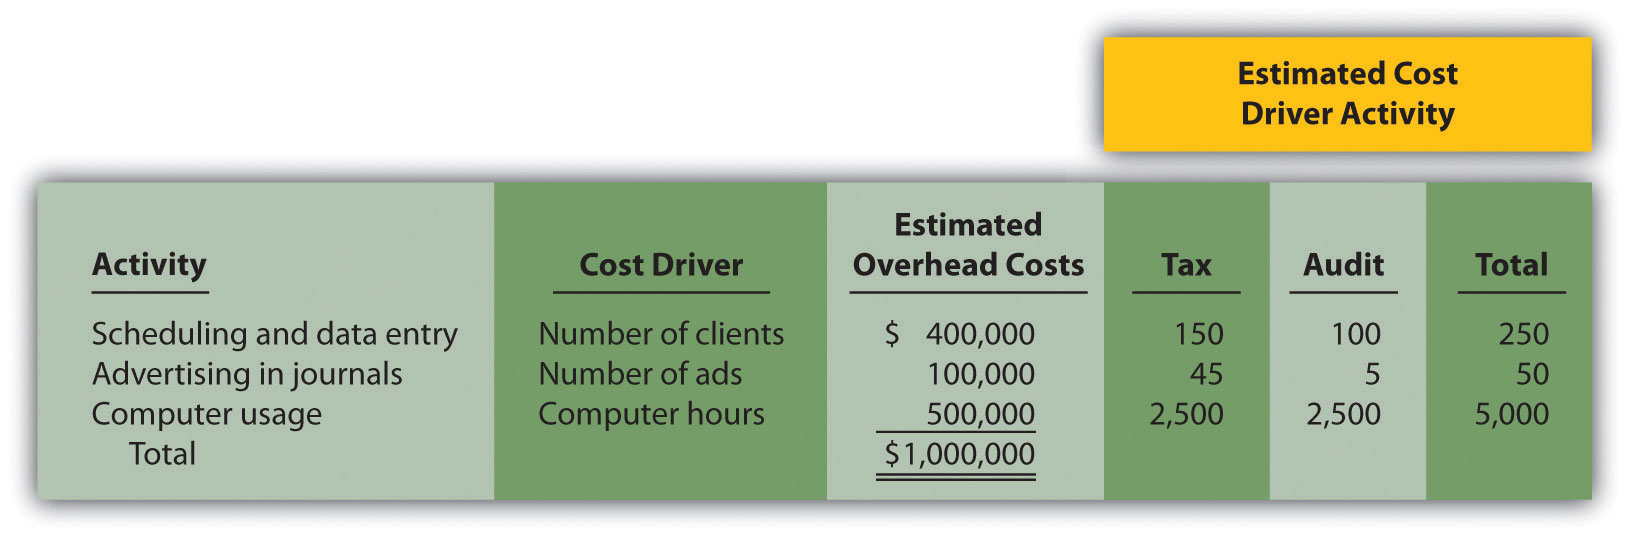 How Does an Organization Use Activity-Based Costing to